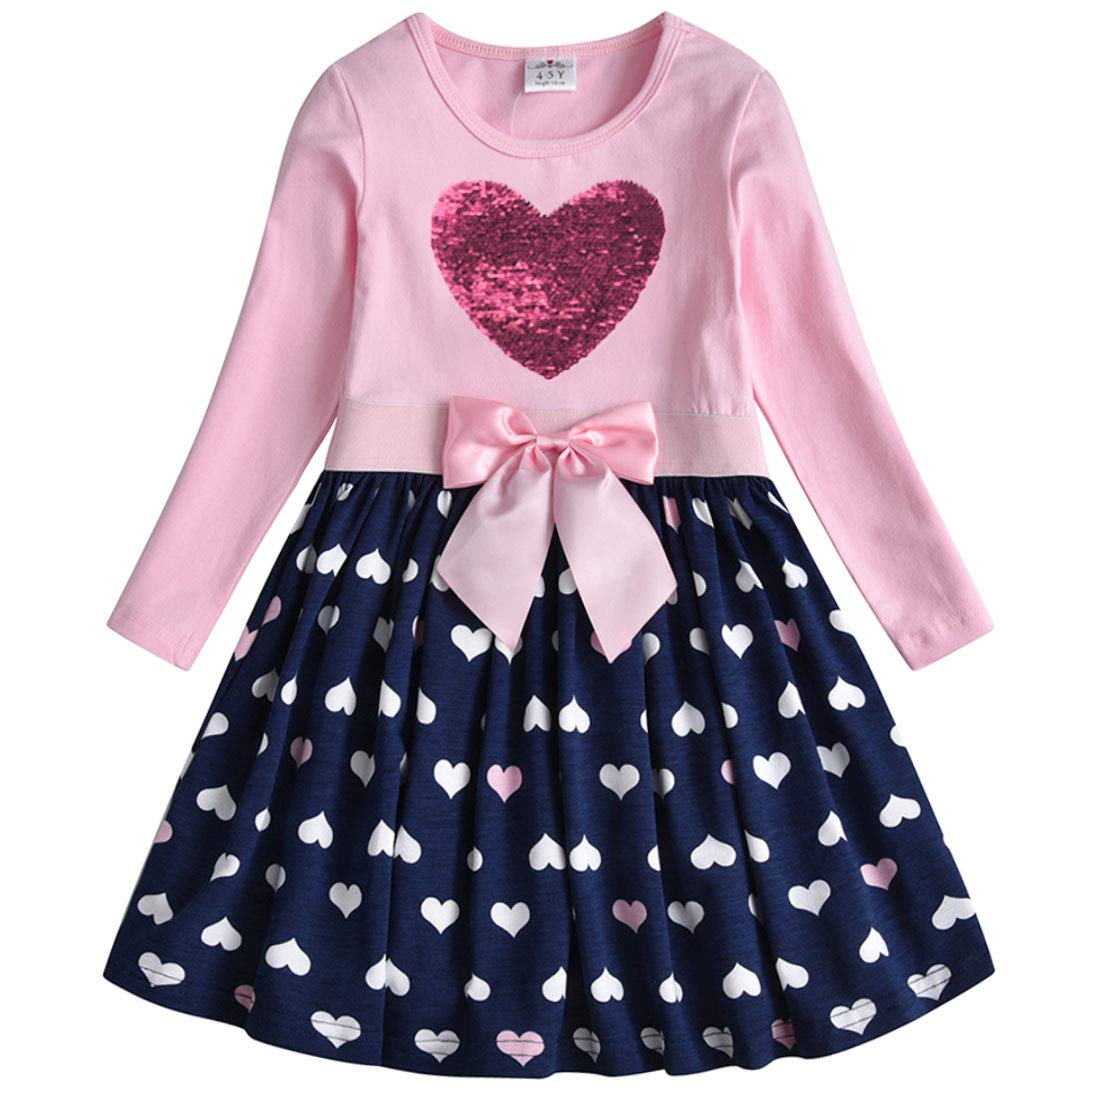 HILEELANG Girl Casual Dress Winter Long Sleeve Cotton Active Playwear Basic Tunic Outfit Dresses